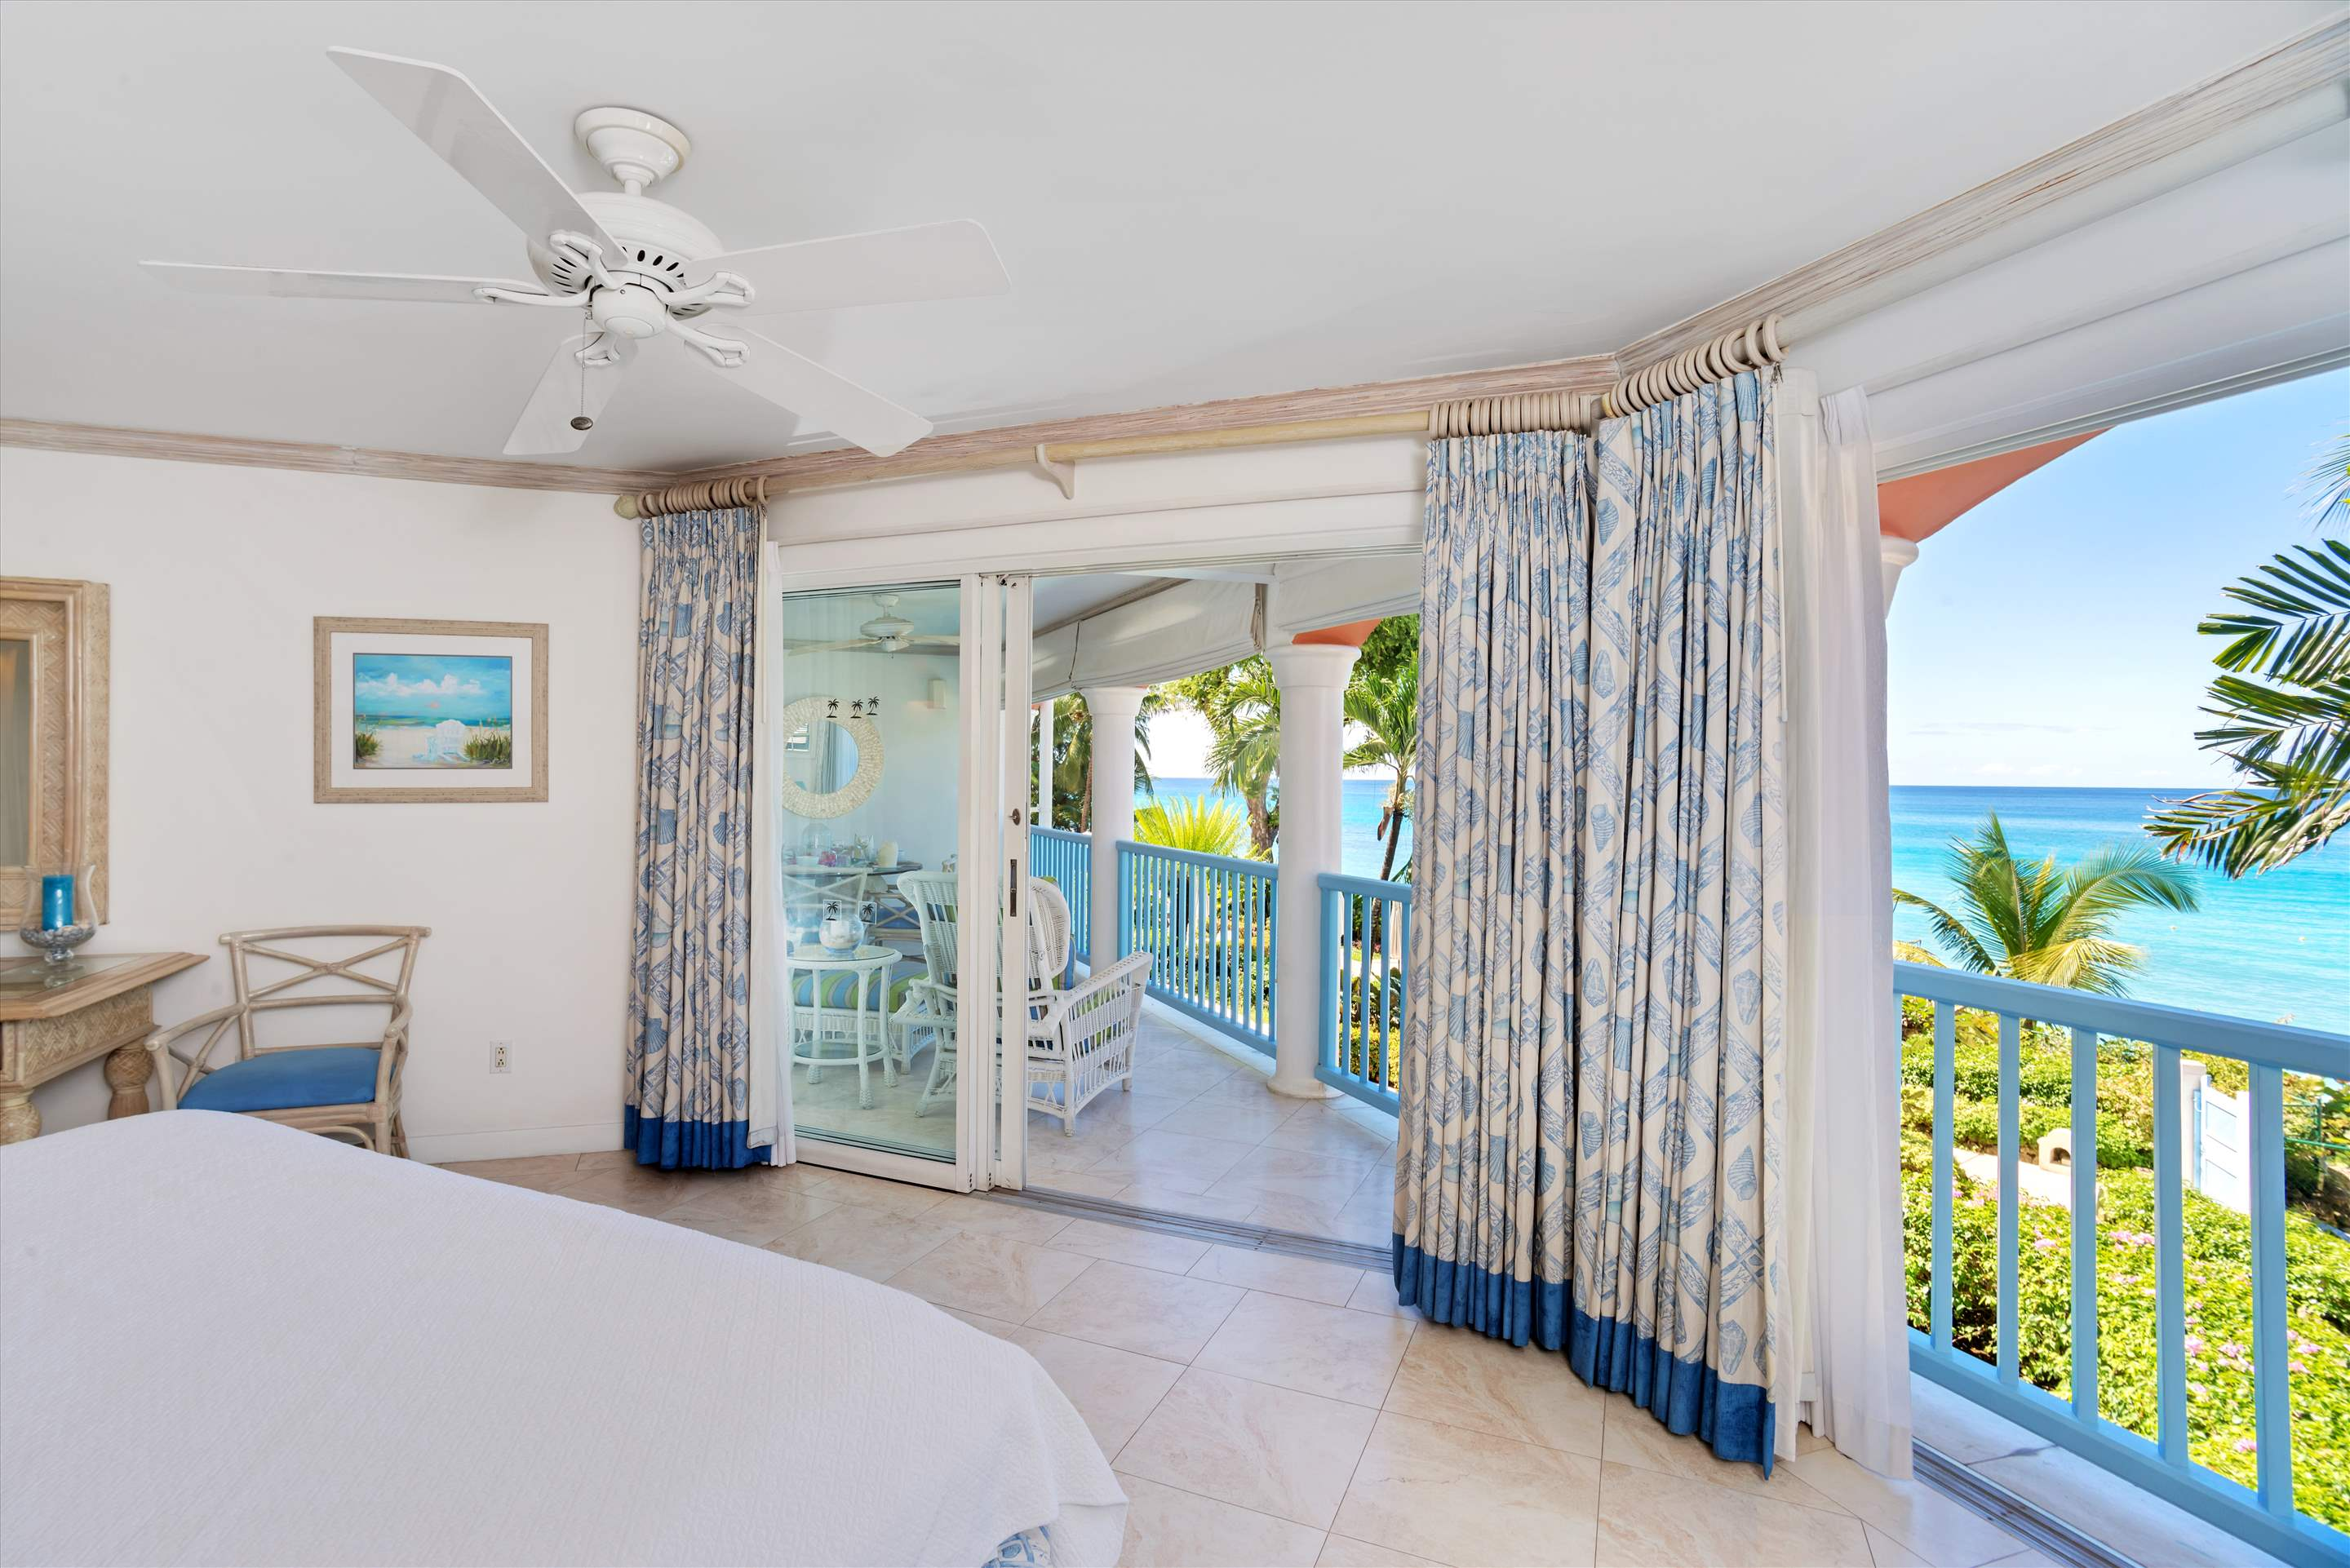 Villas on the Beach 205, 2 bedroom, 2 bedroom apartment in St. James & West Coast, Barbados Photo #9